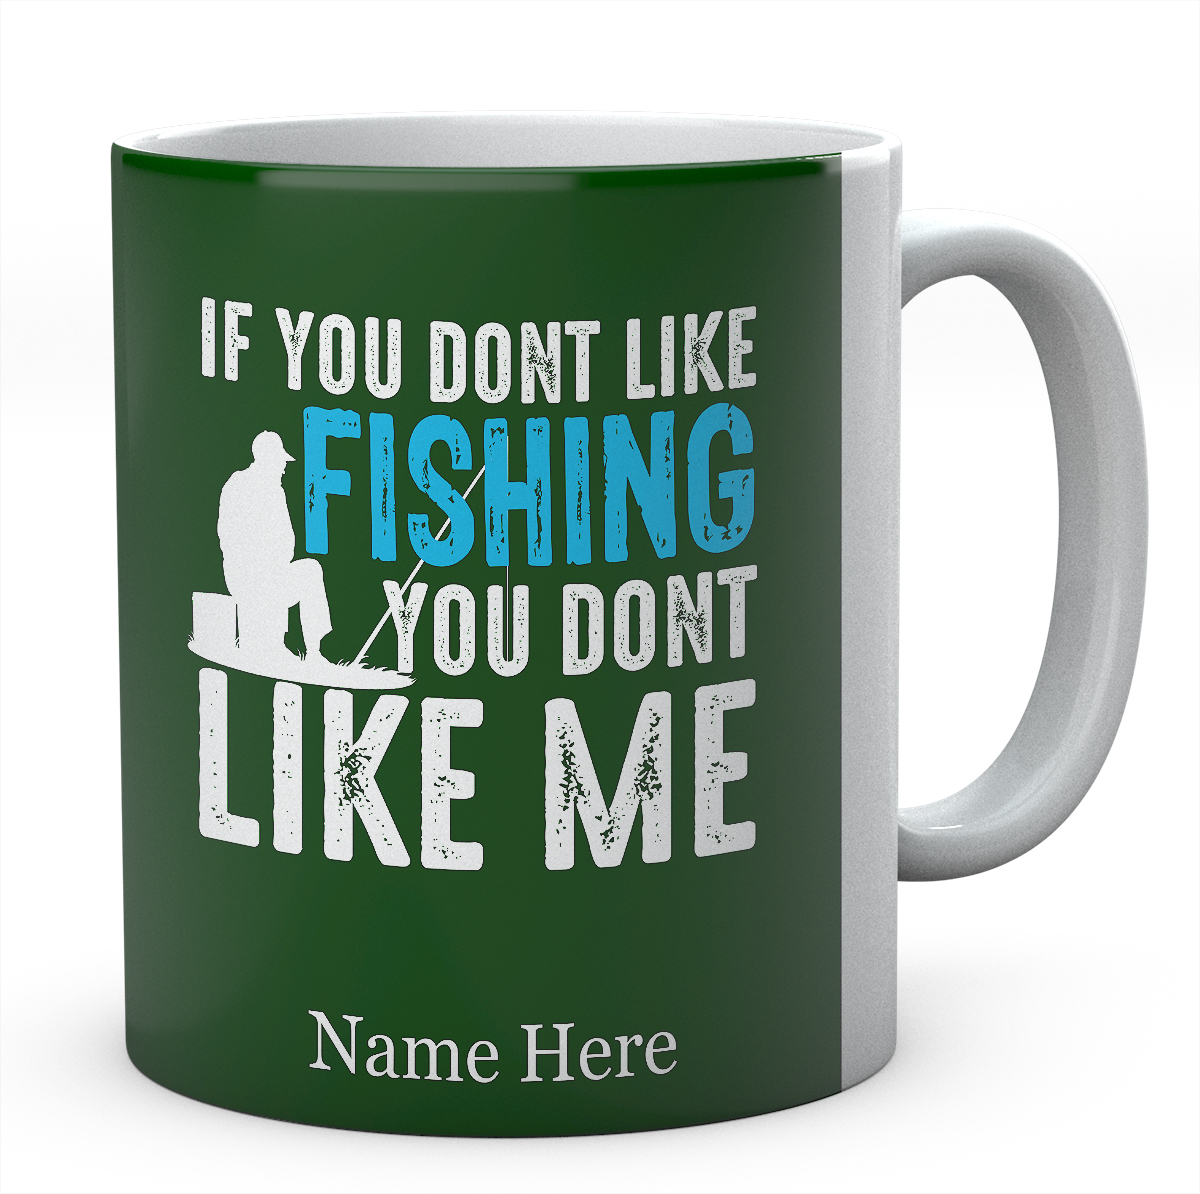 If You Don't Like Fishing You Don't Like Me-Personalised Mug